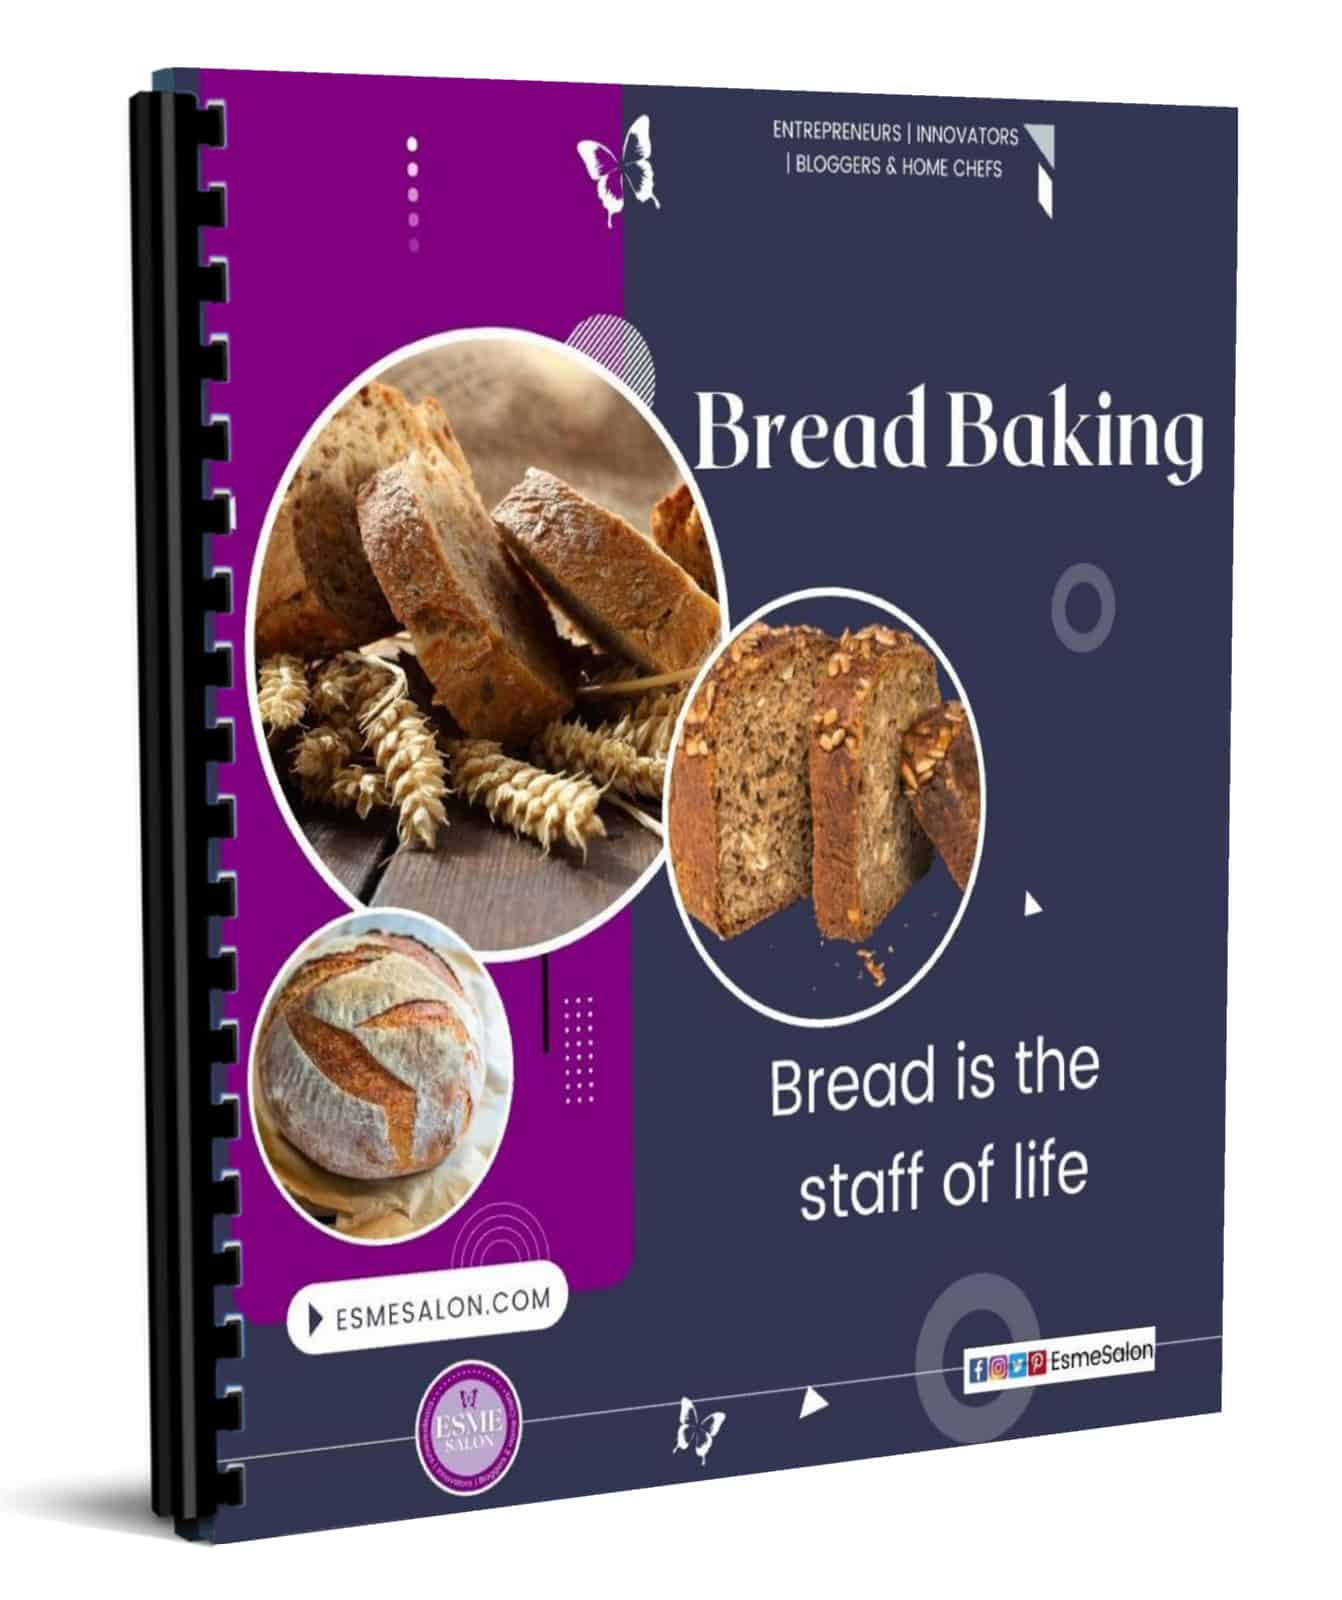 Bread Baking recipe eBook image, with purple and grey sections and three images in circles of various bread and corn pictures and stating Bread is the staff of life